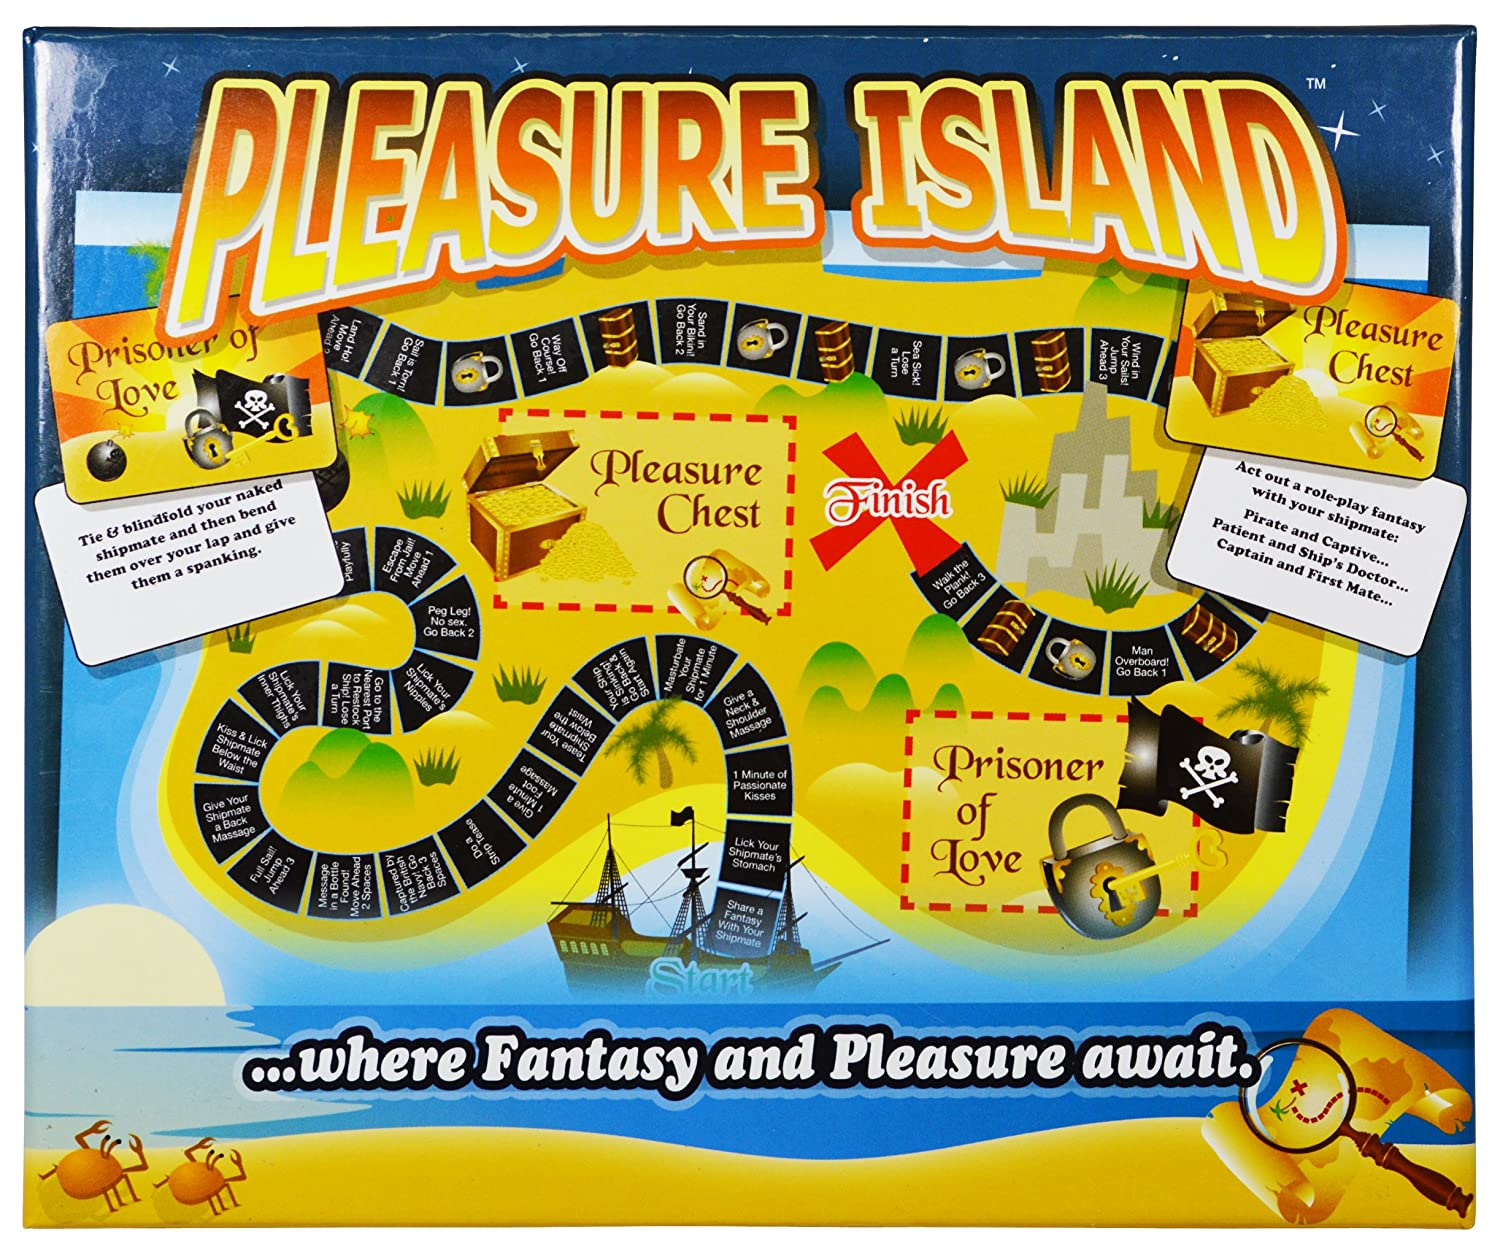 Pleasure island sex game